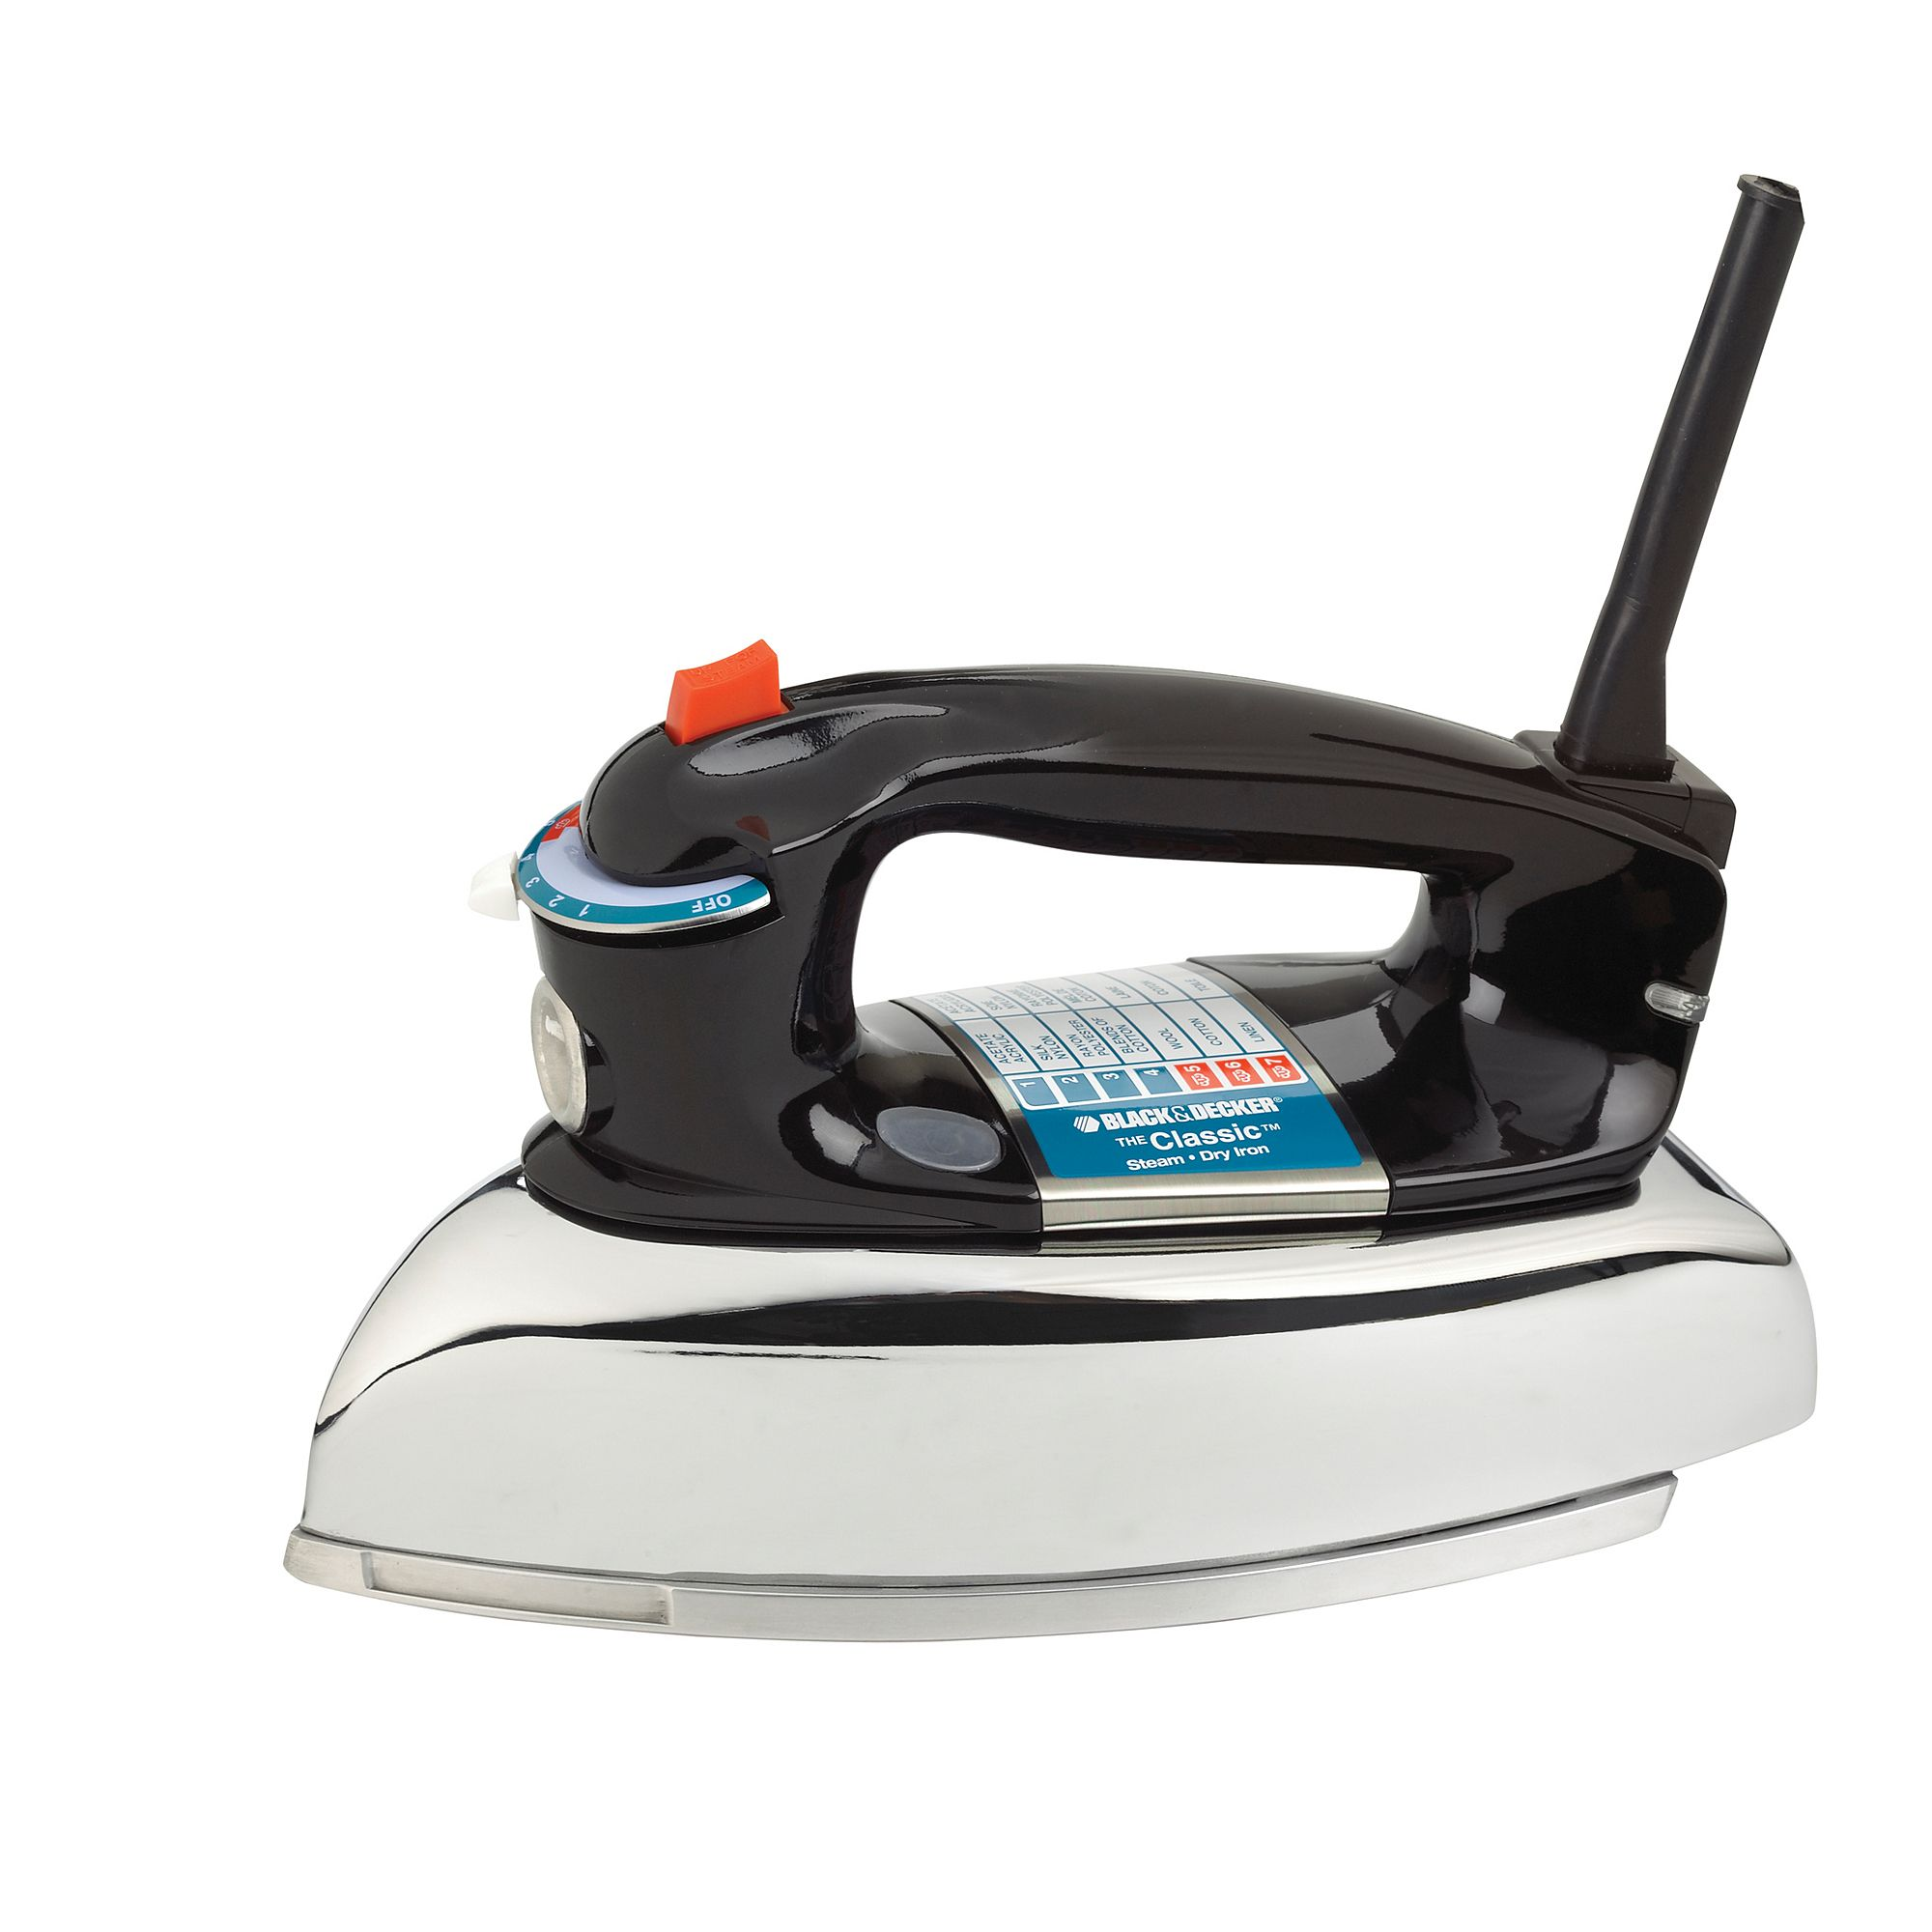 Black Decker Black And Decker Classic Iron Irons Ironing Systems How To Iron Clothes Black Decker Classic Metal